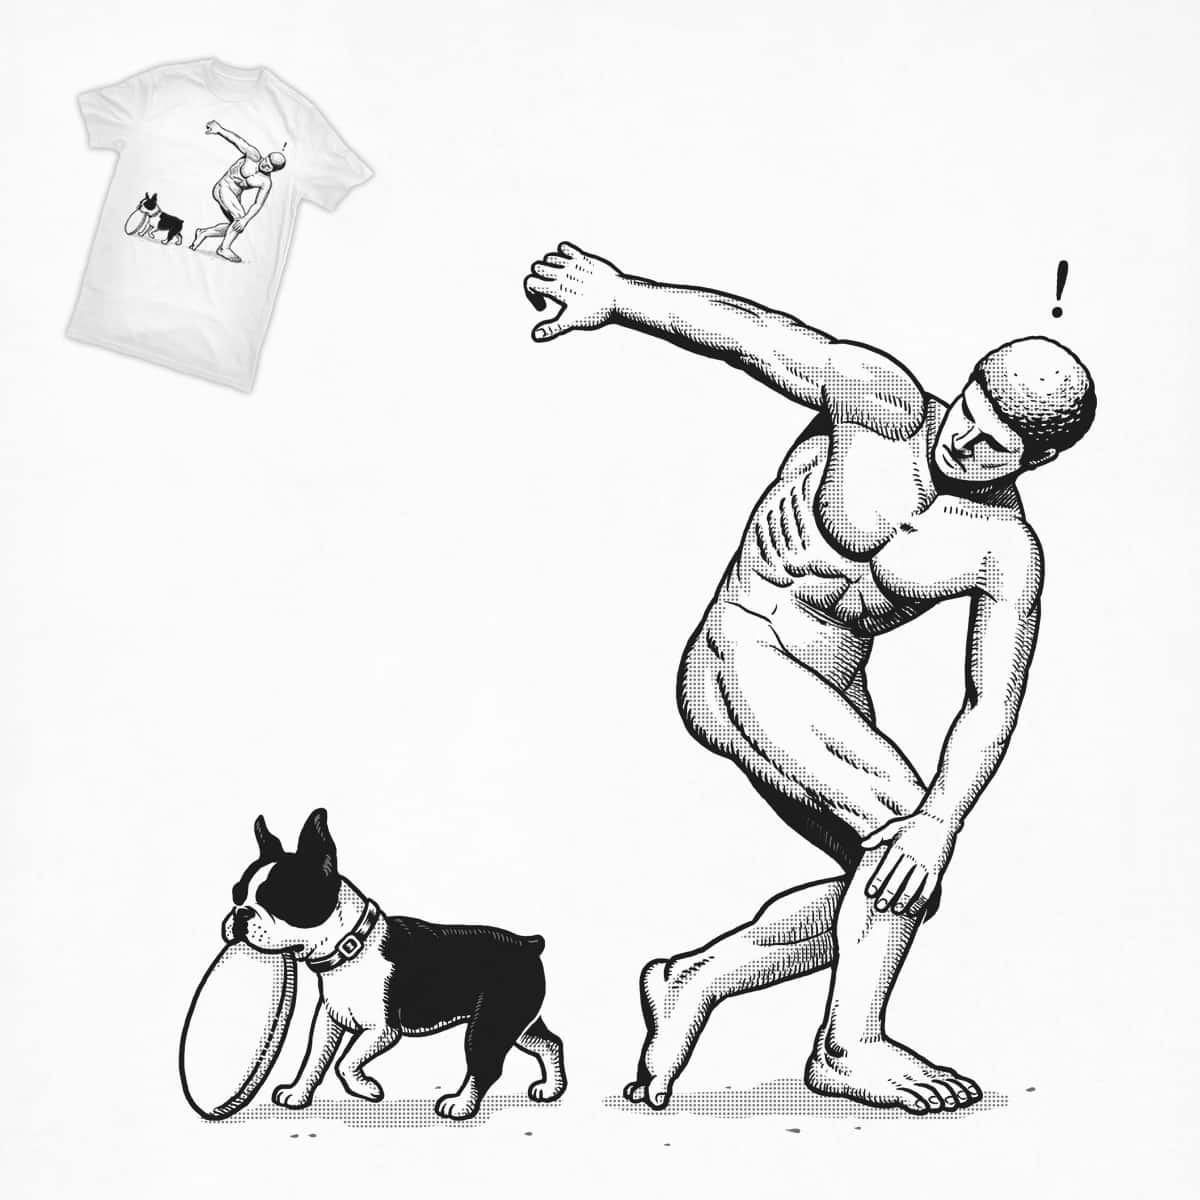 Dog & Frisbee by ben chen on Threadless